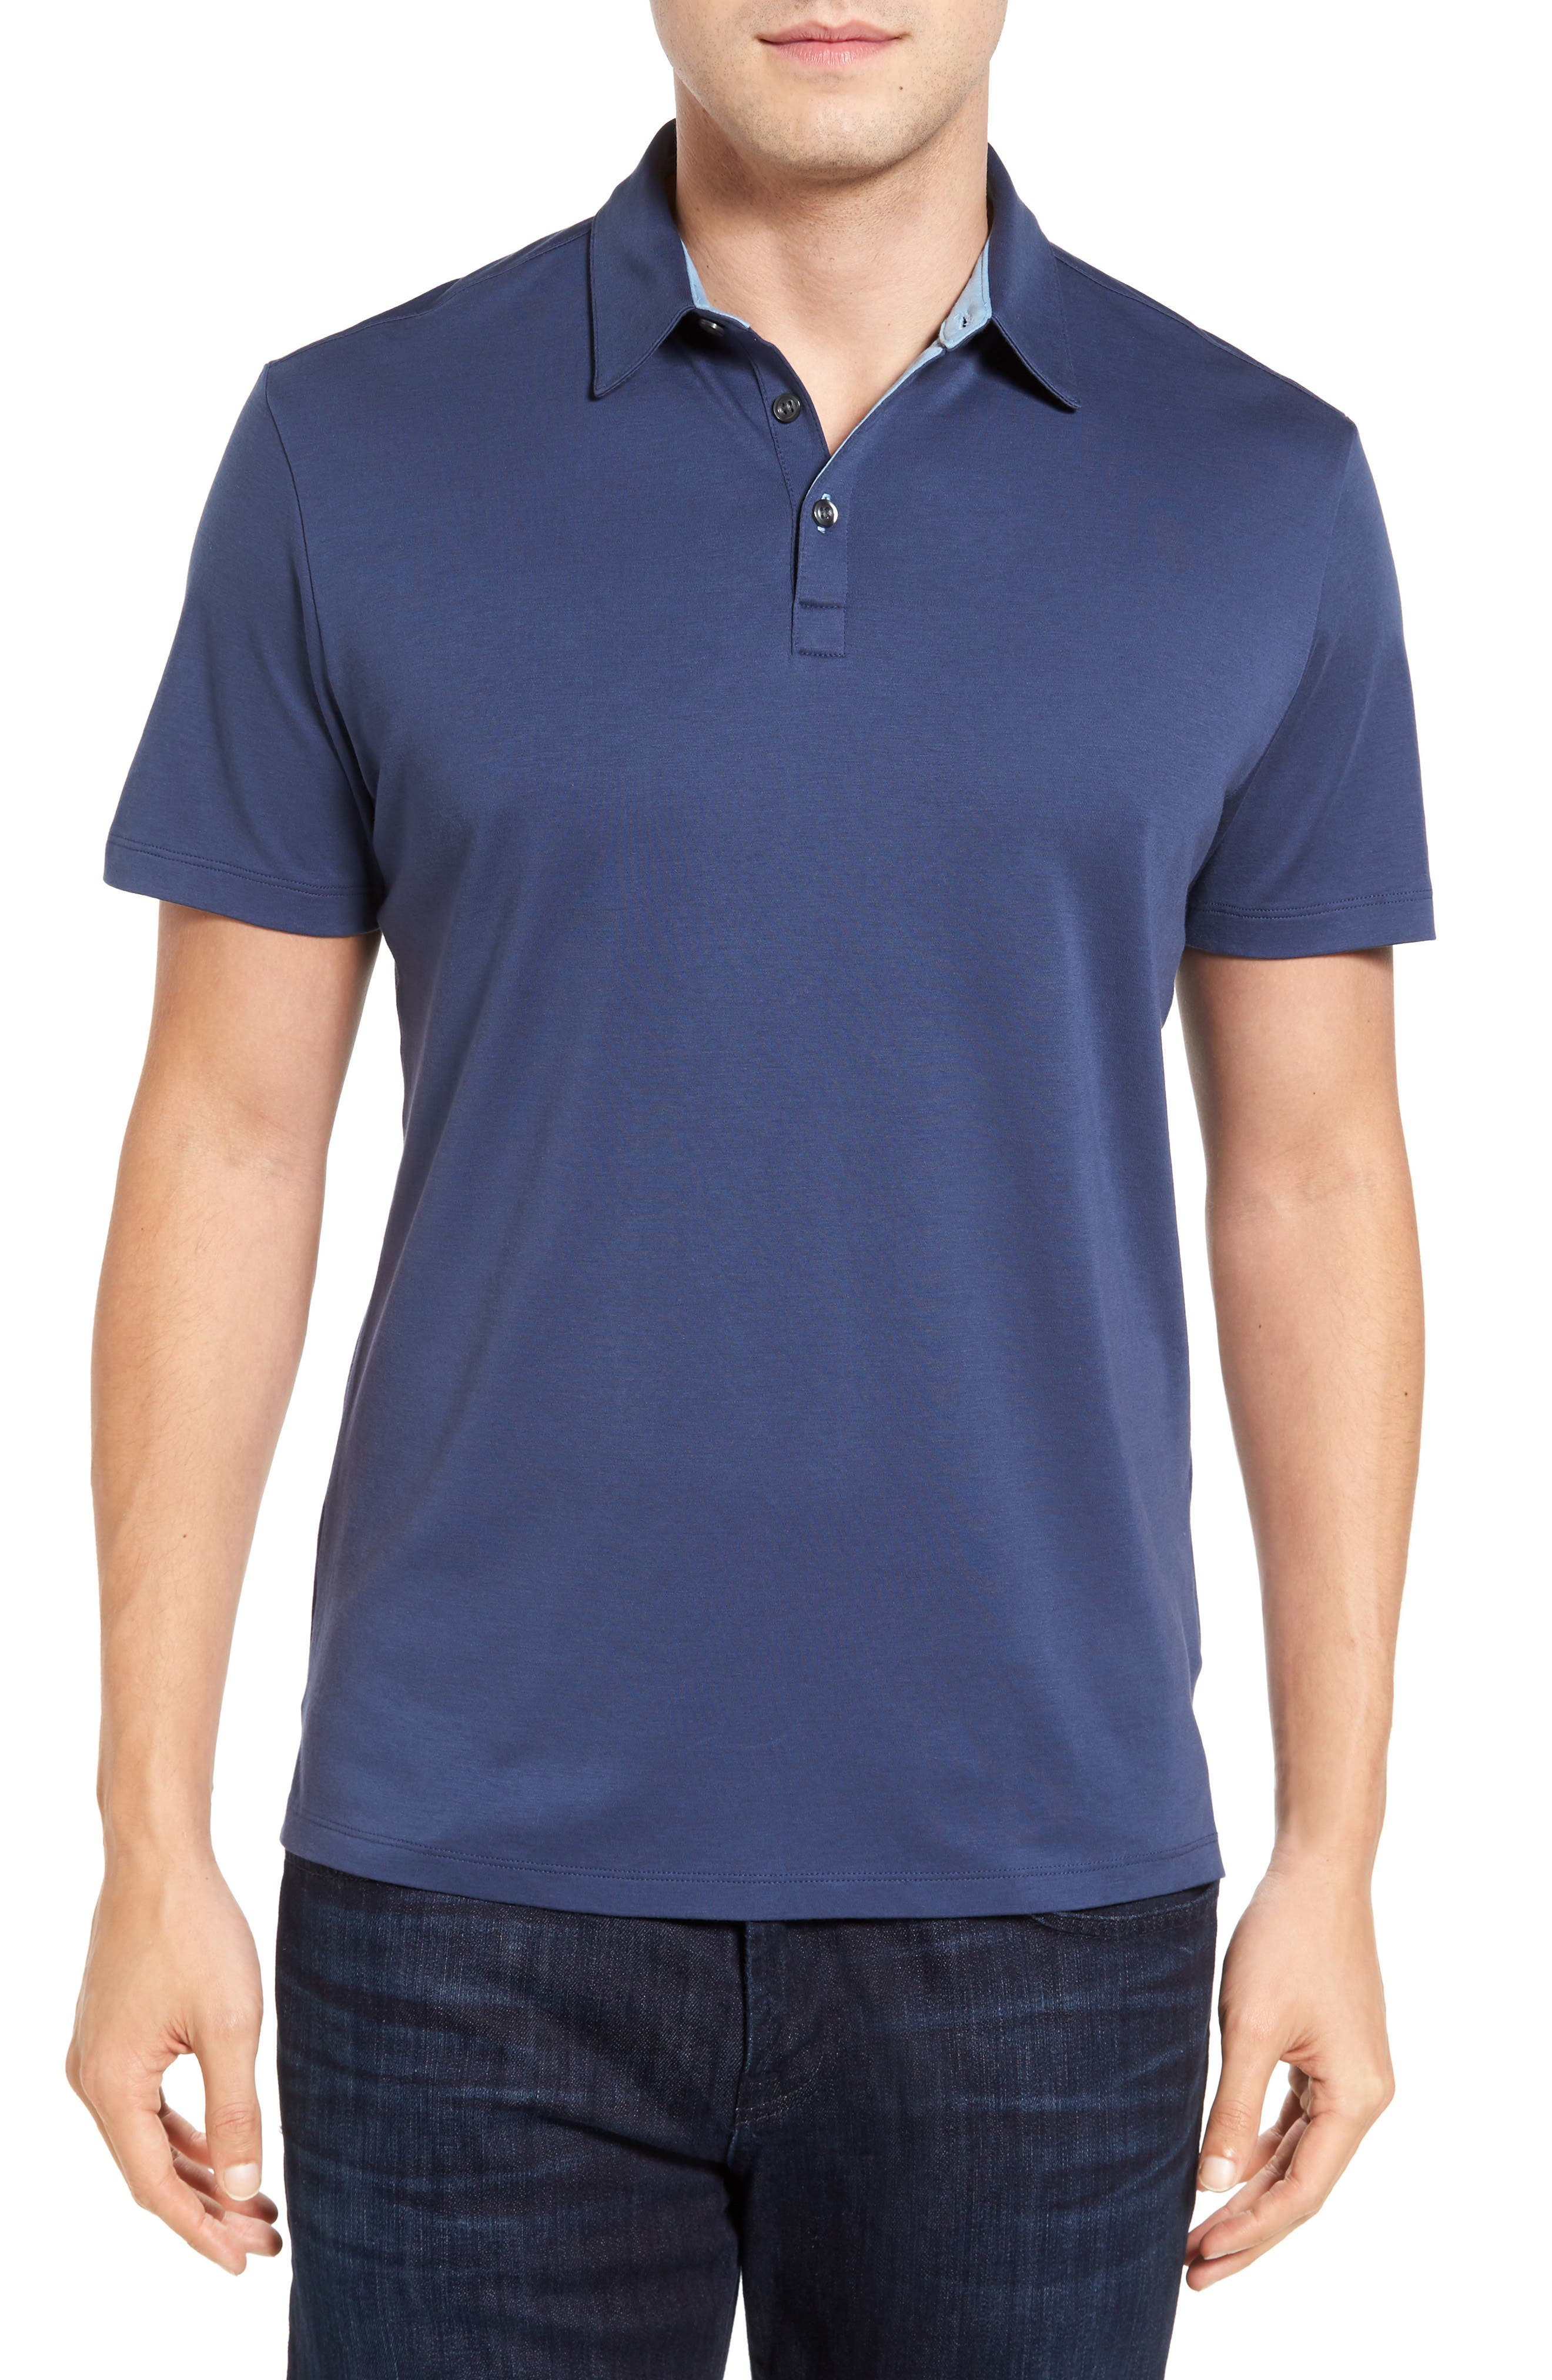 Robert Barakett Batiste Pima Cotton Polo